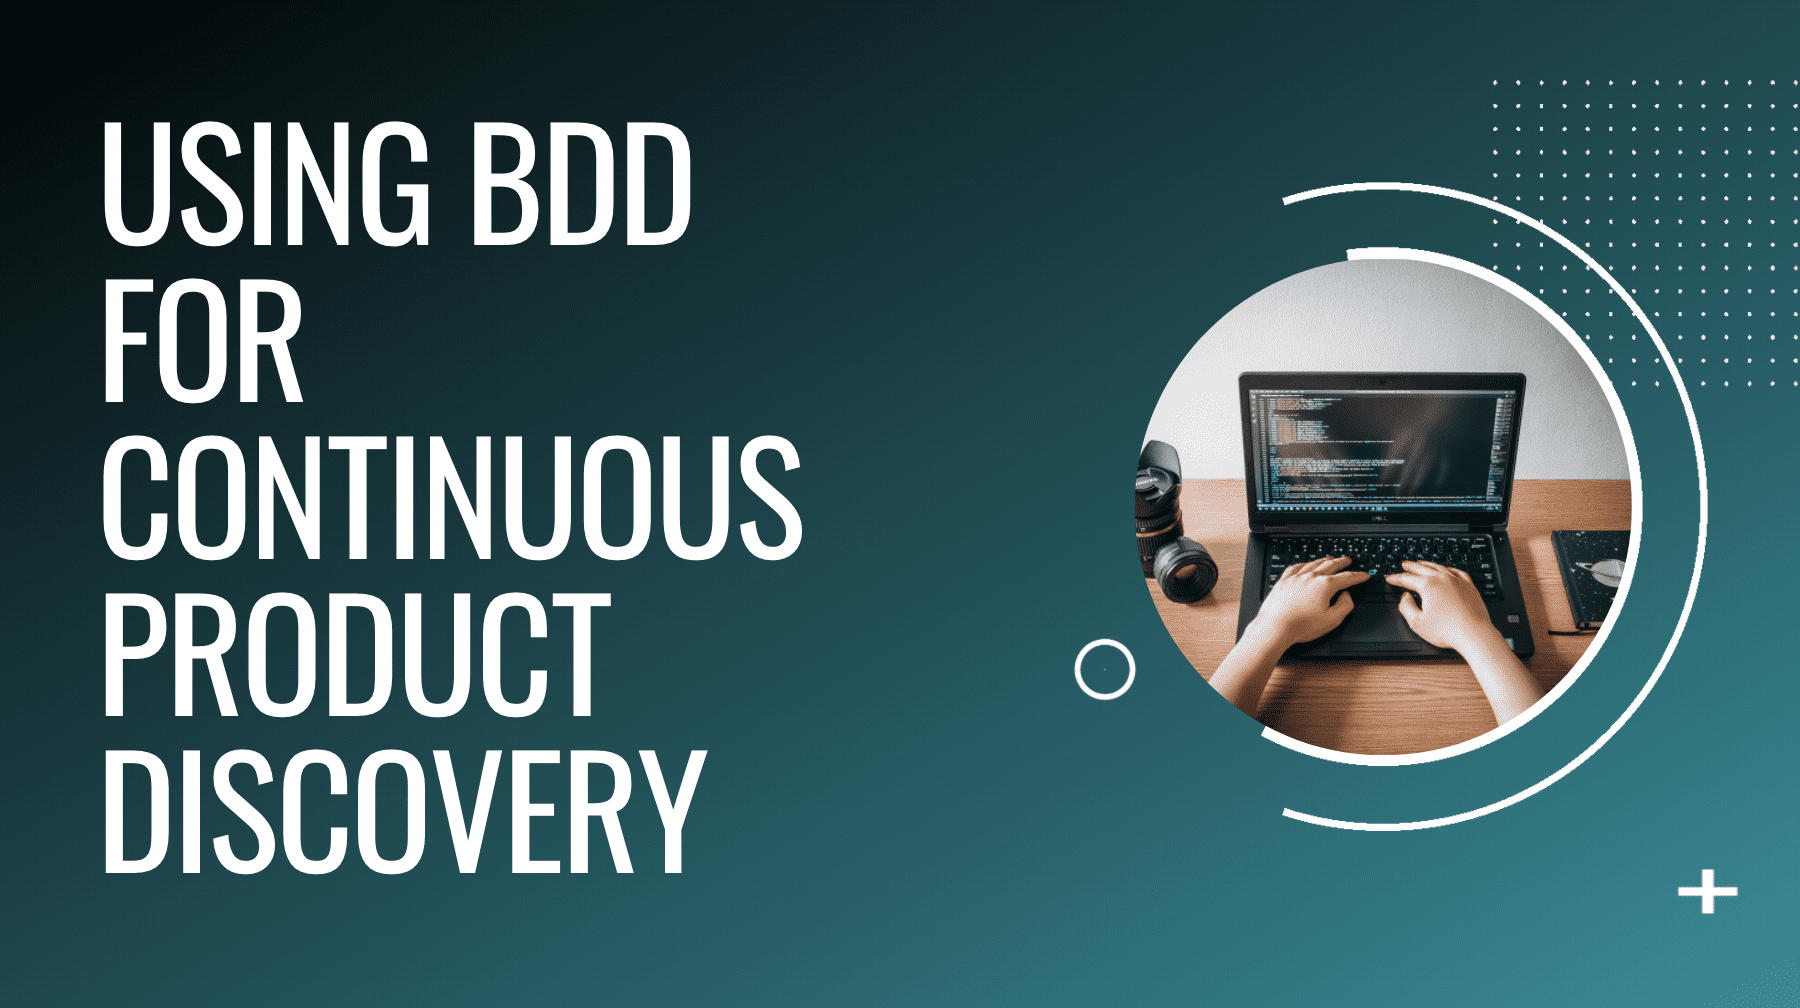 Lunch & Learn: Using BDD for Continuous Product Discovery